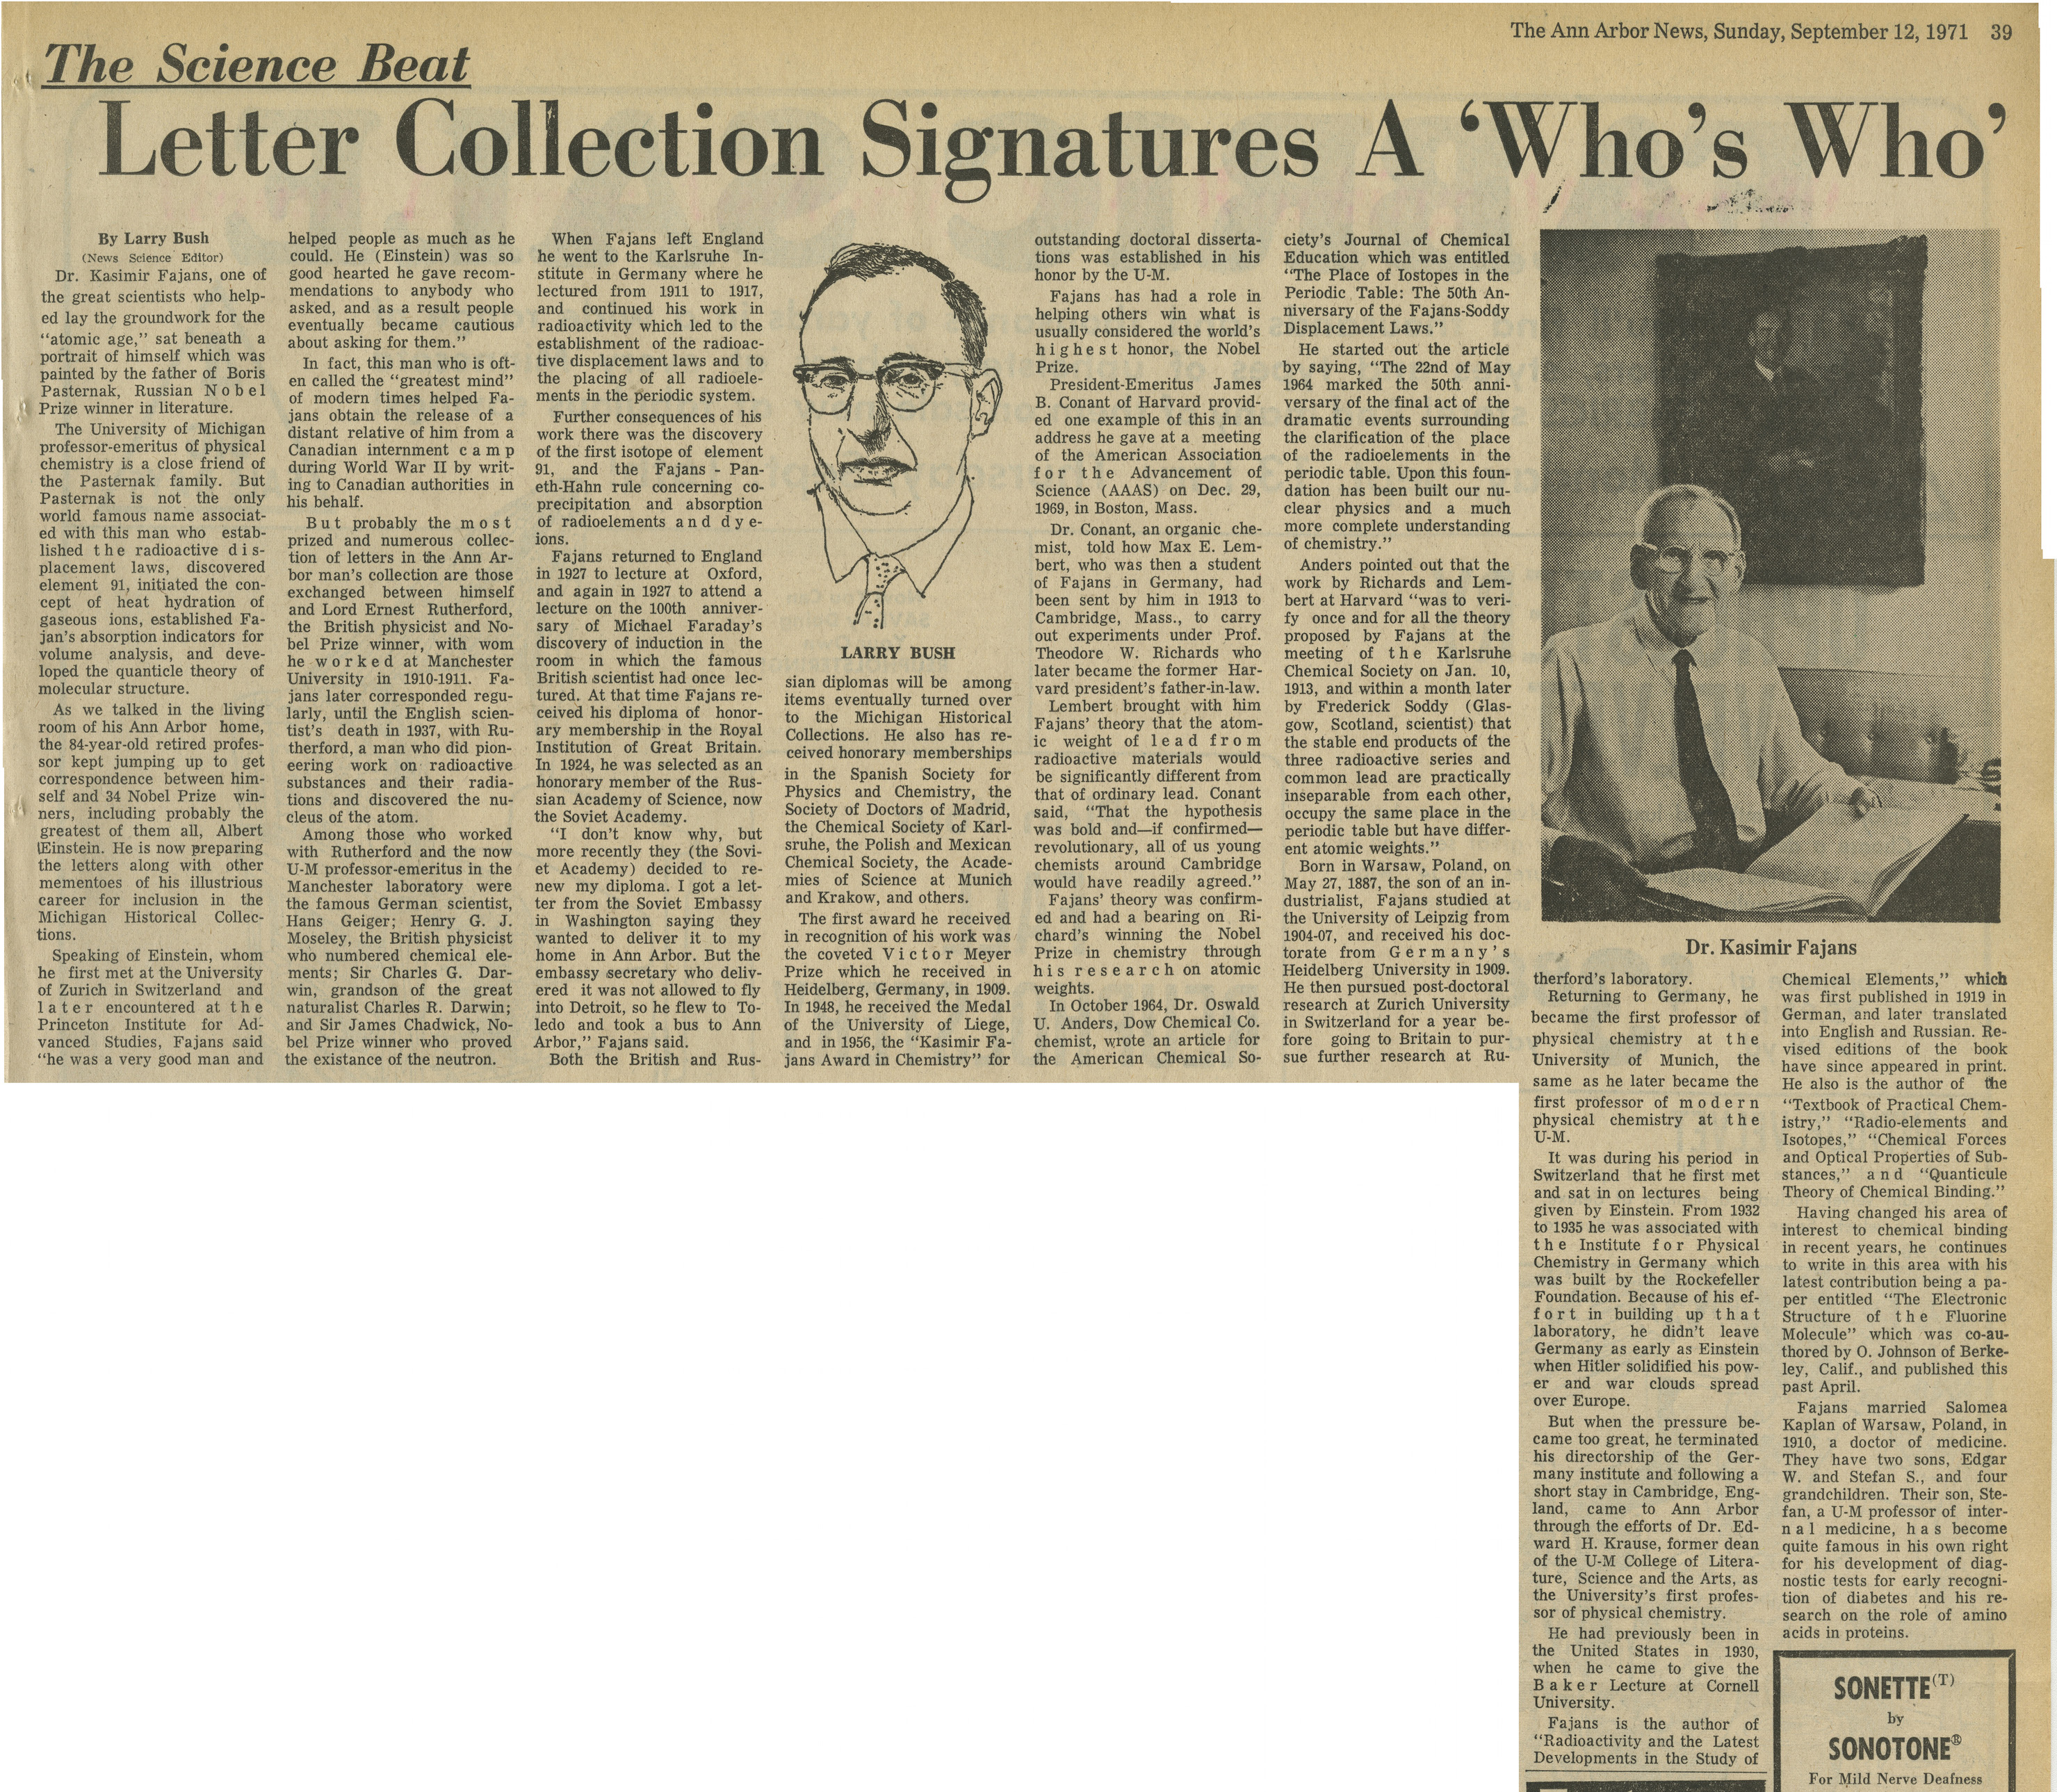 Letter Collection Signatures A 'Who's Who' image